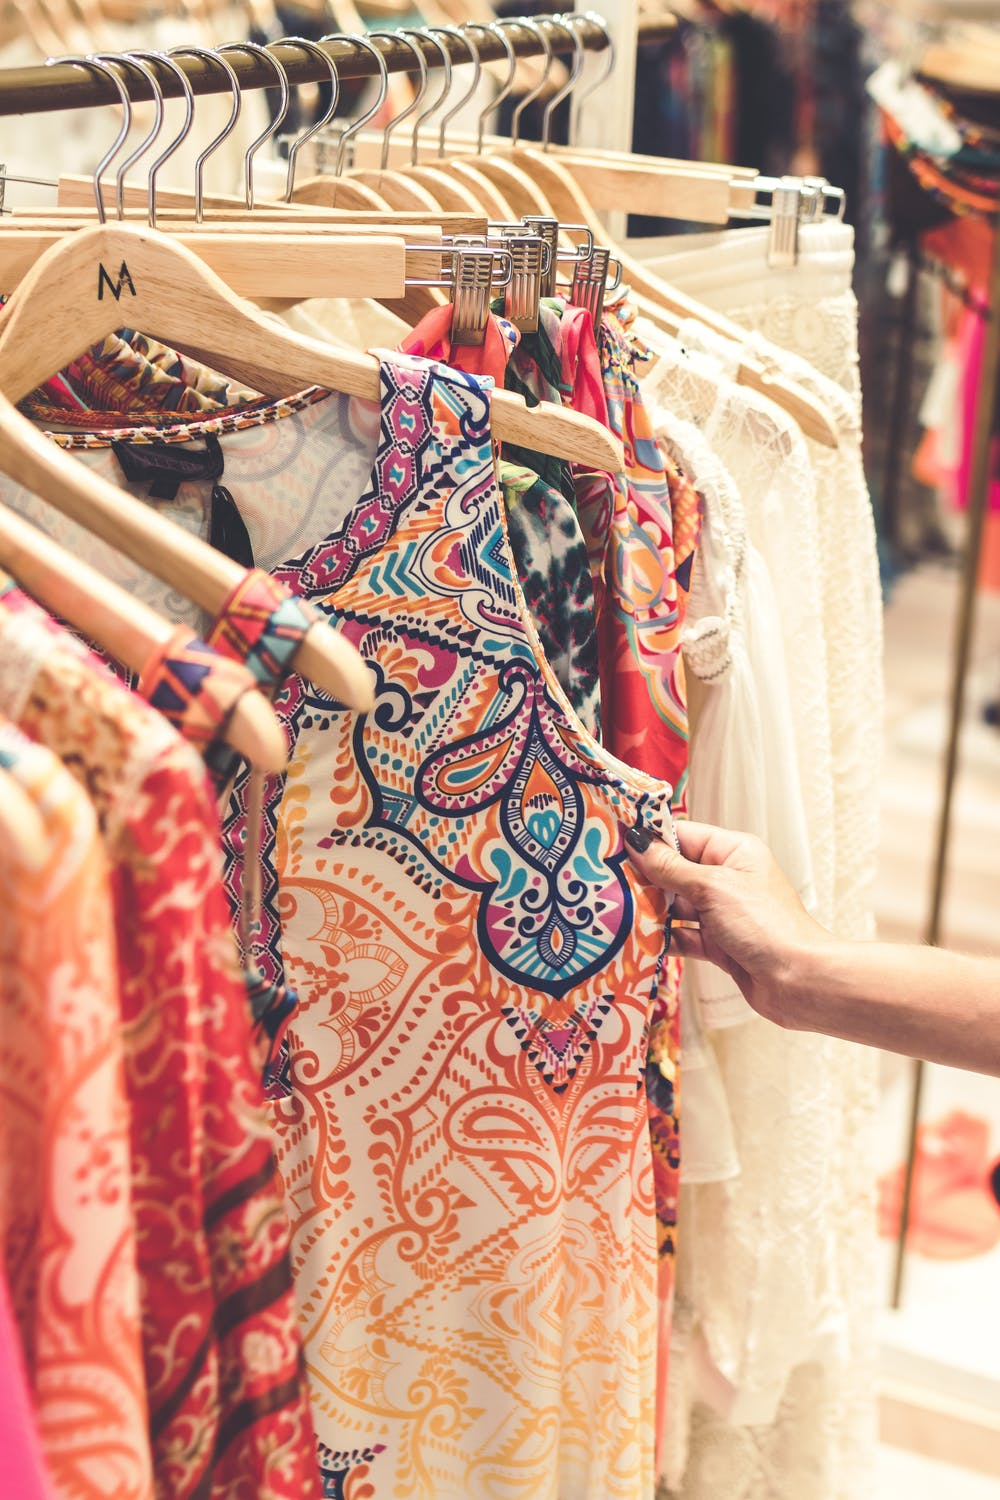 The Hassle-Free Way if Choosing the Perfect Wardrobe